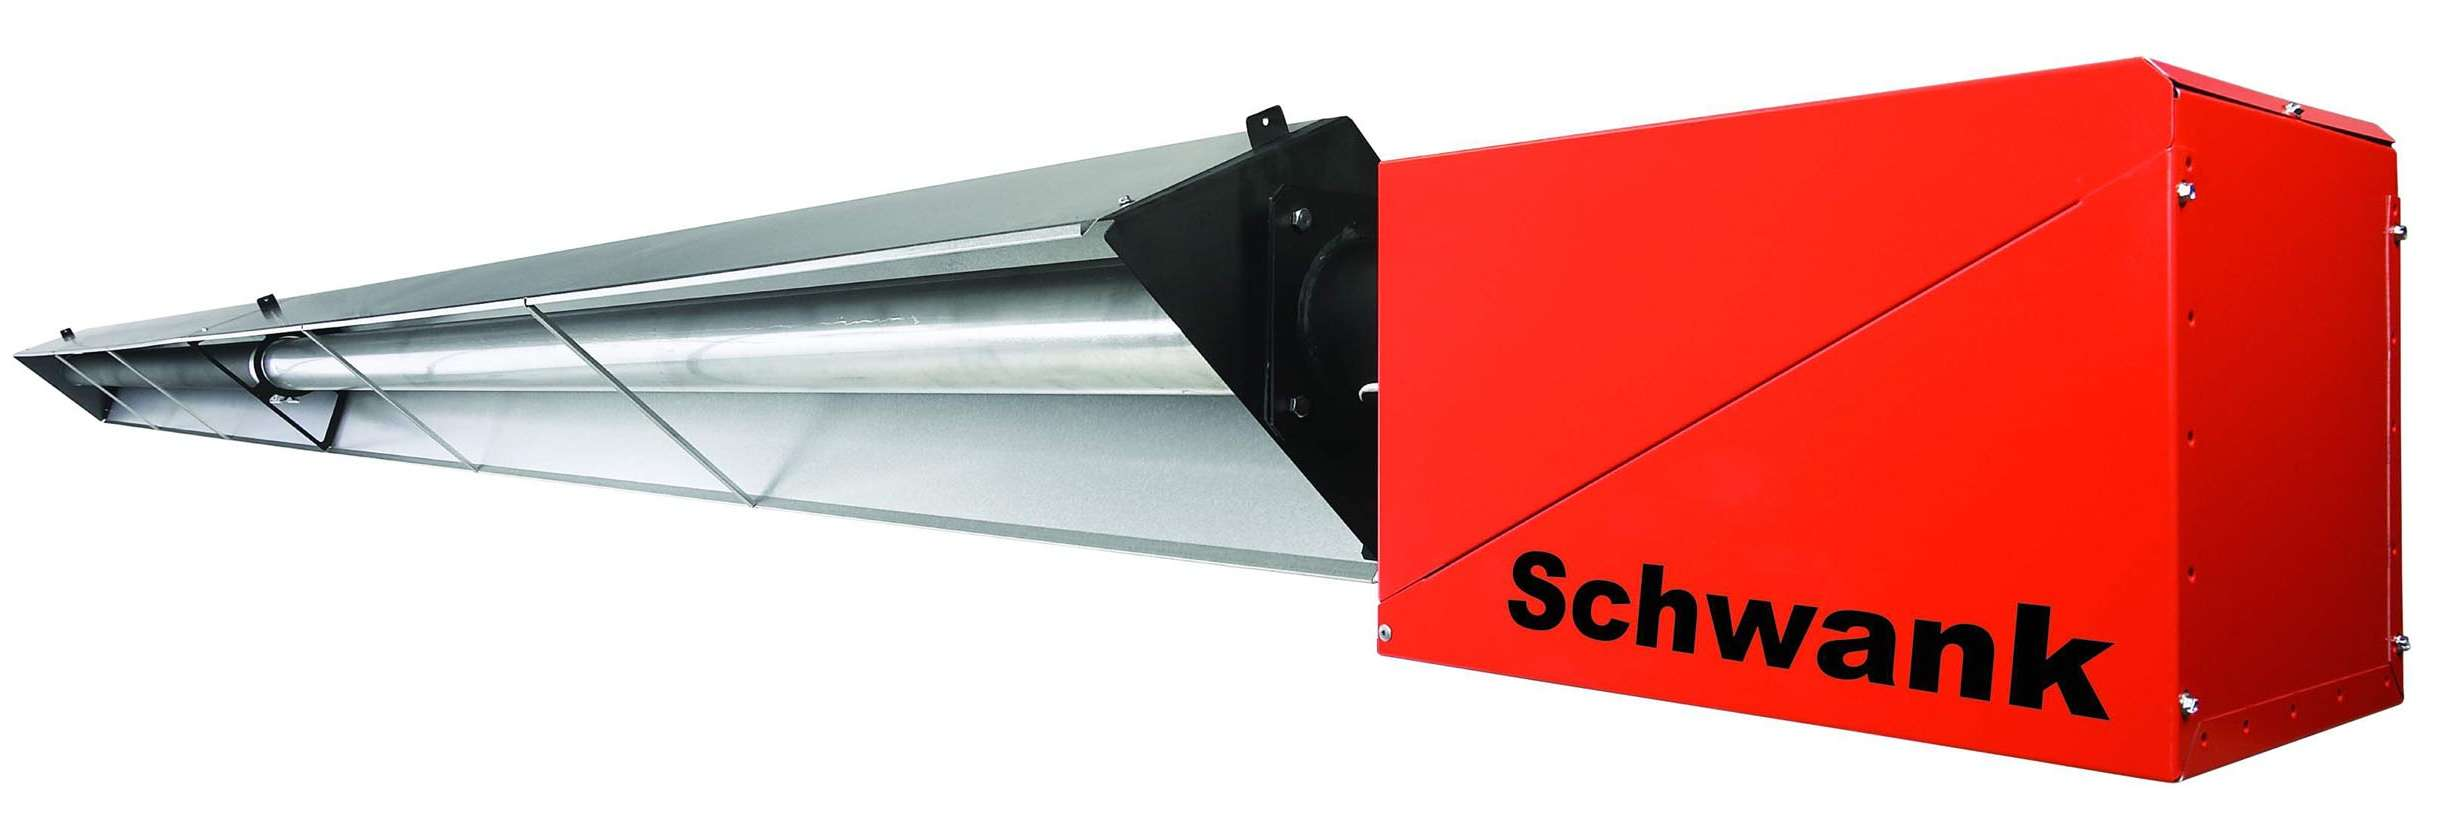 Schwank S New Jazzed Up Infrared Tube Heater Has Easy